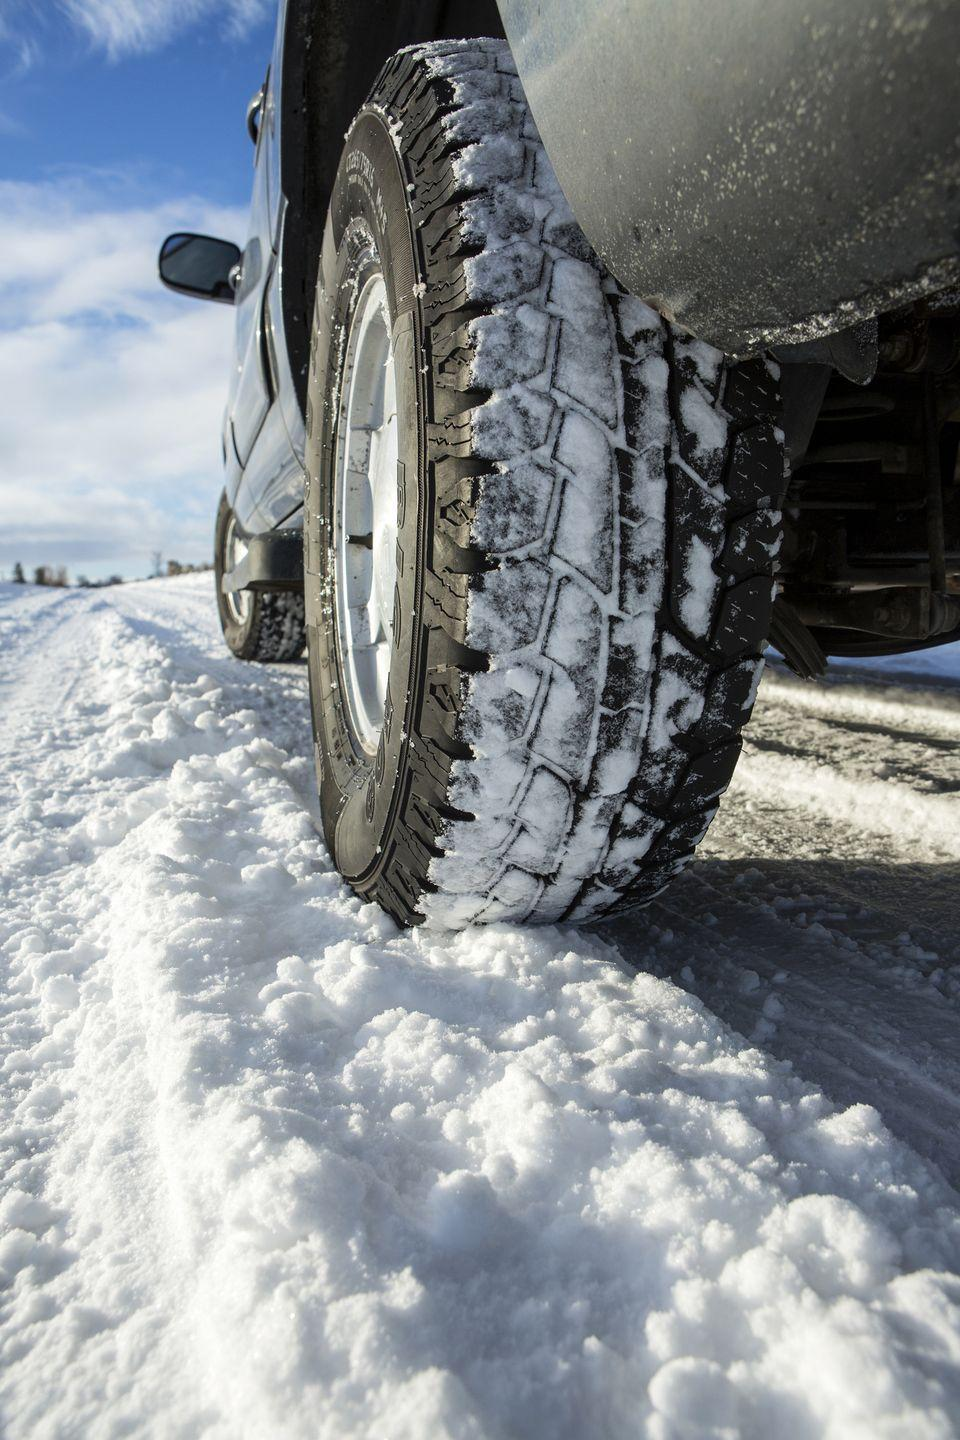 "<p>If you notice any uneven tread on your tires, you may want to get them replaced or repaired so that your tires are ready for winter. Depending on your local climate, consider investing in snow tires. ""No matter what kind of tires you use on your car, the tread depth should be at least 3mm along the entire way around to allow ice and snow to be packed in so you can maintain sufficient contact with the road,"" says Peters. Snow tires wear out quicker than your regular tires, so make sure you revert back at the end of the season. Also, be sure to check your tire pressure regularly, as it affects fuel economy. They start to deflate once temperatures fall below 32 degrees. Low tire pressure reduces the tread and traction, which can lead to sliding on ice.</p>"